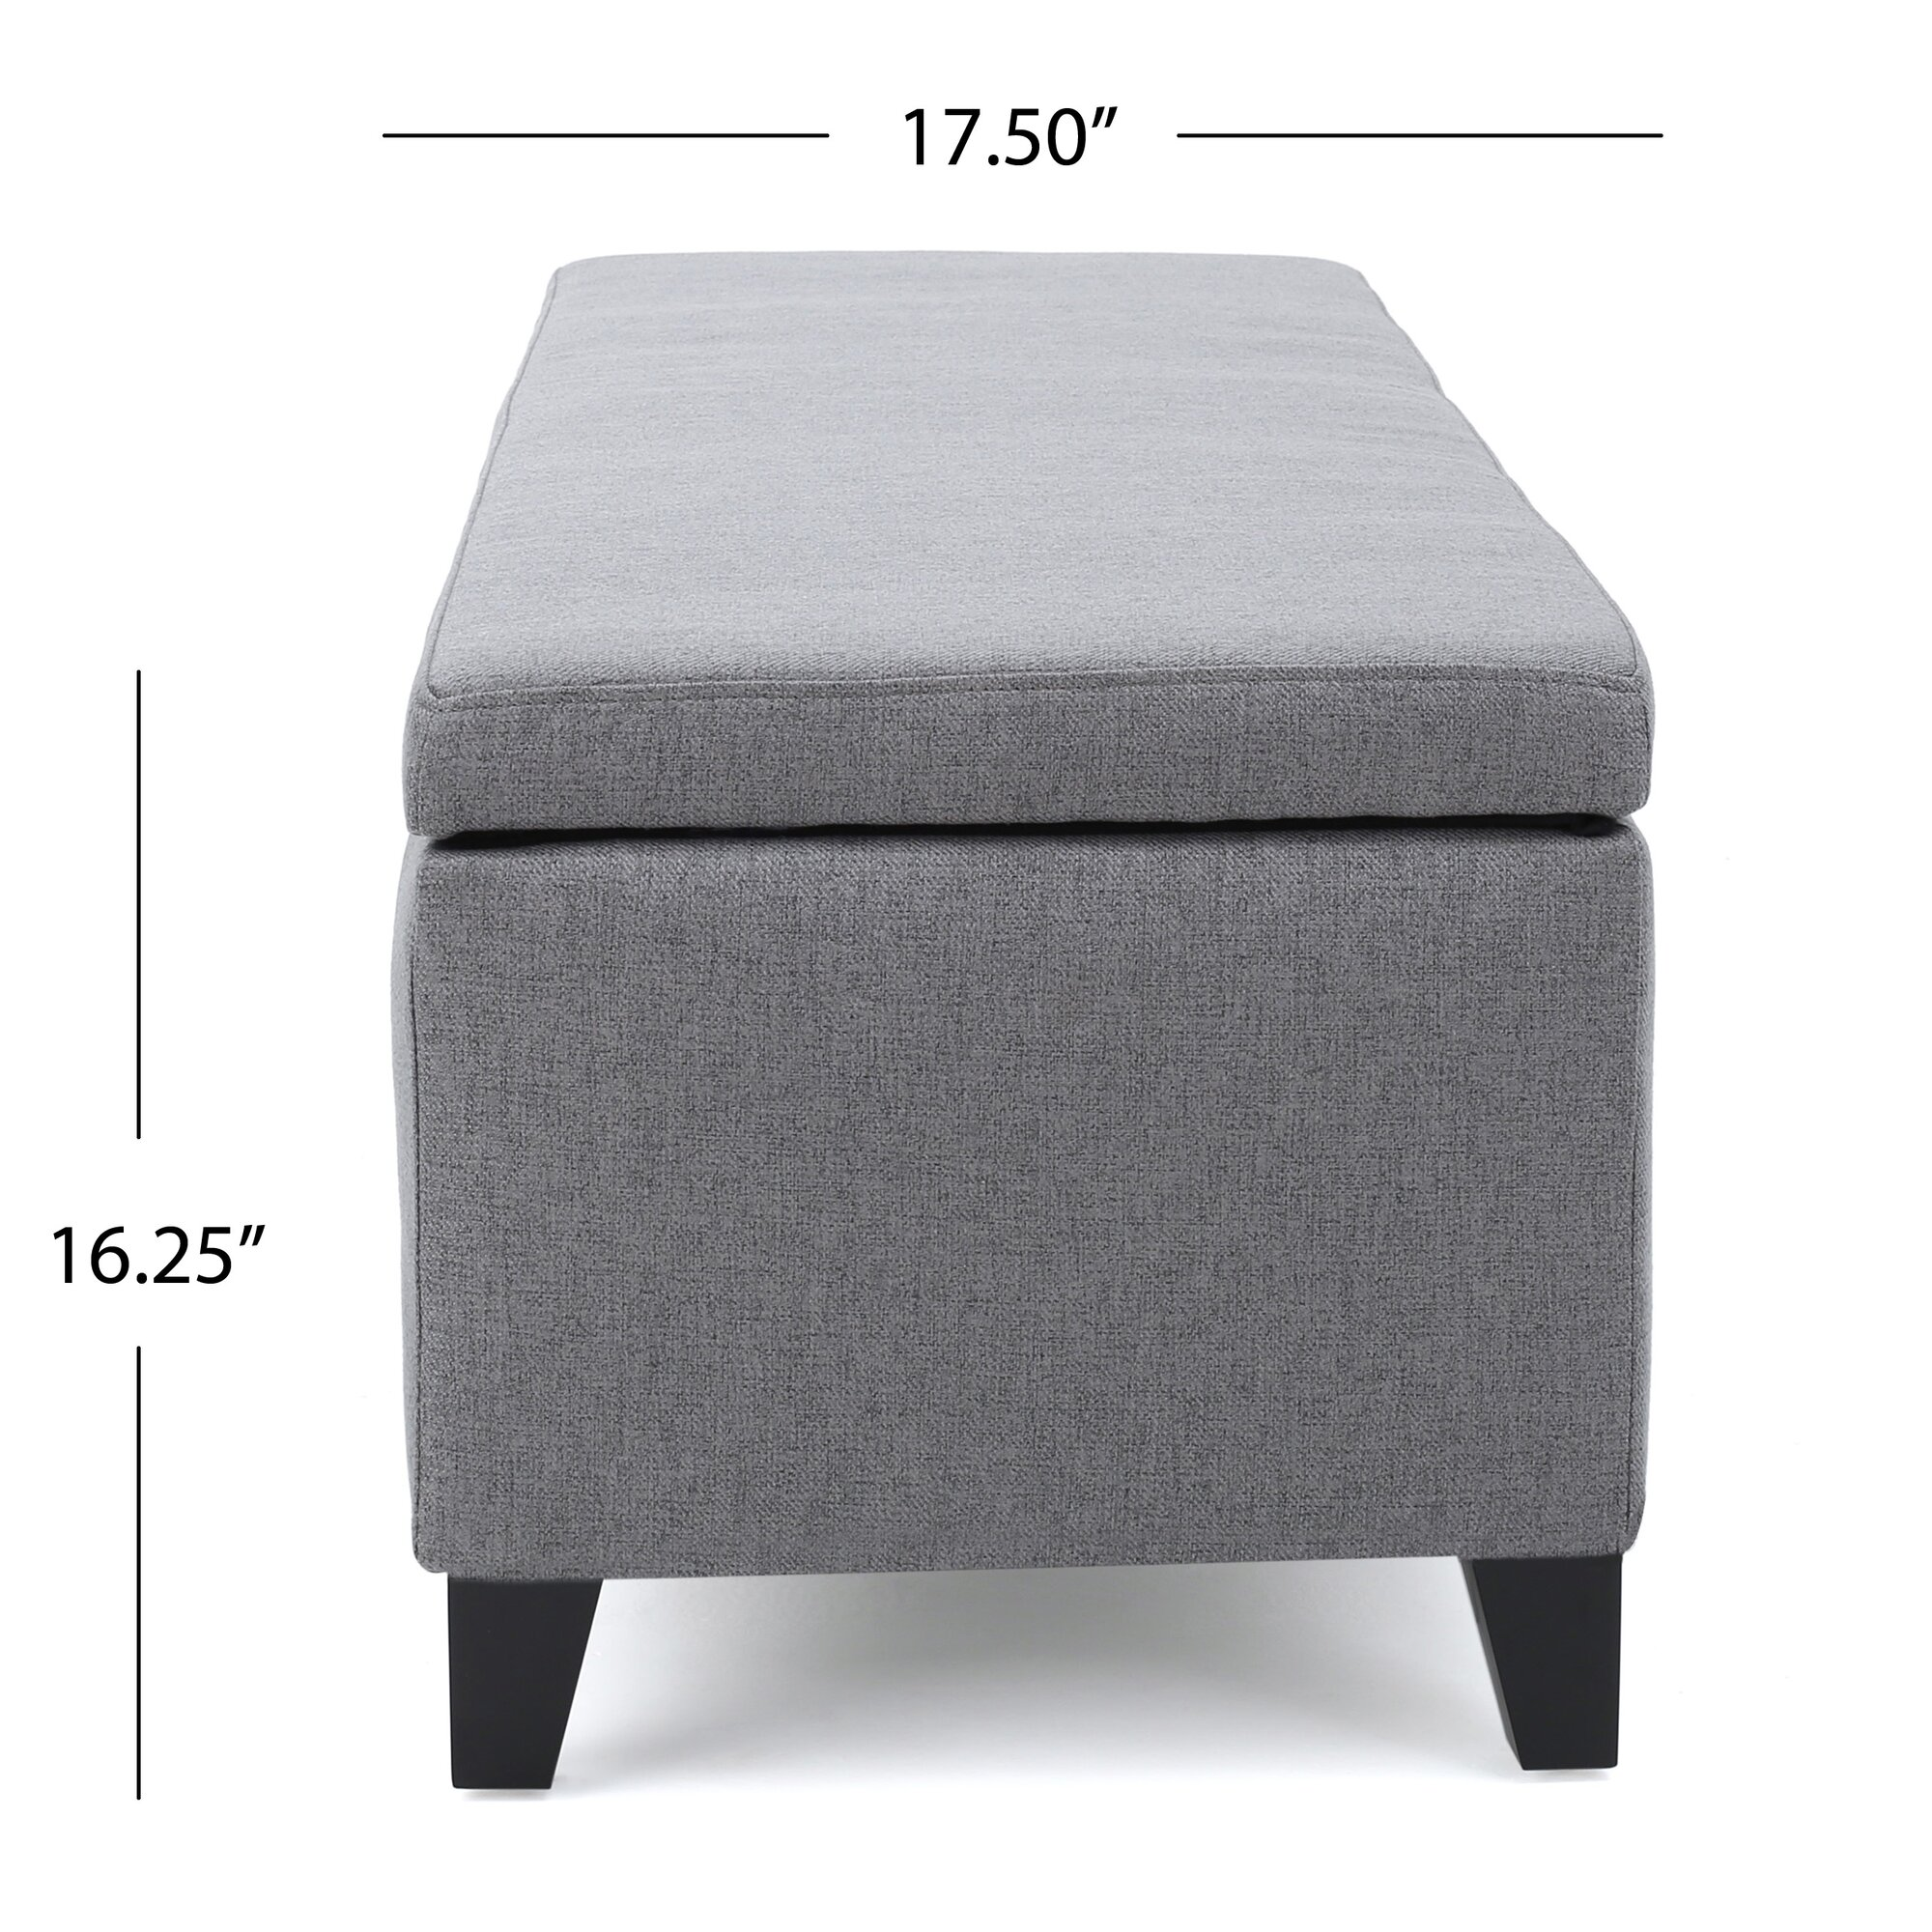 Bedroom bench dimensions - Schmit Upholstered Storage Bedroom Bench